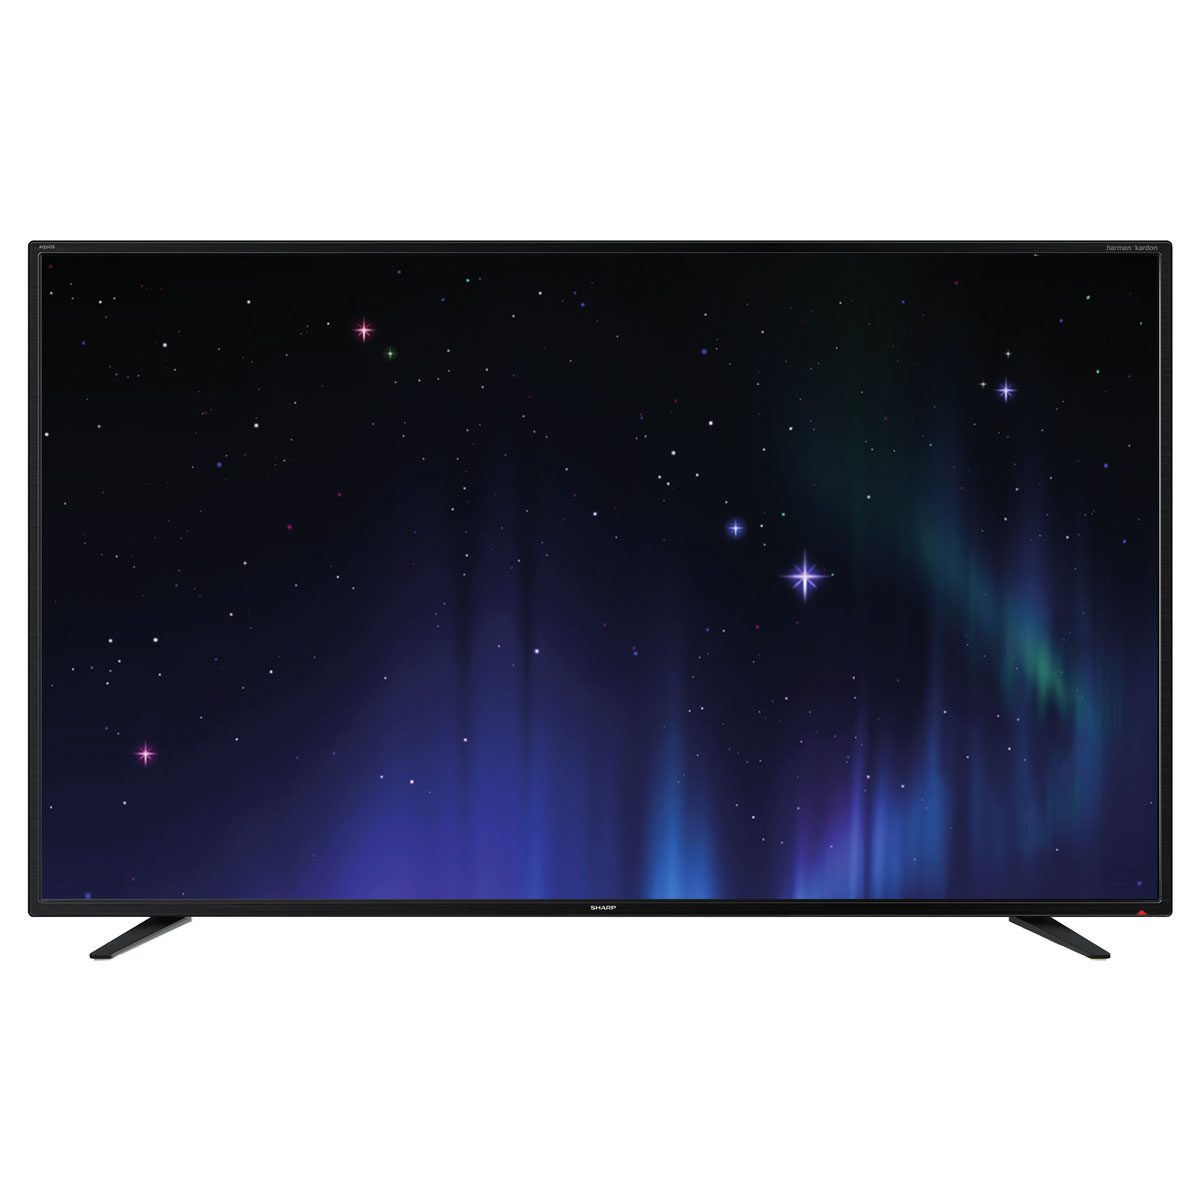 "TV Sharp LC-43UI7252E Téléviseur LED 4K Ultra HD 43"" (109 cm) - 3840 x 2160 pixels - Ultra HD - HDR - Wi-Fi - DLNA - Harman/Kardon - 400 Hz"